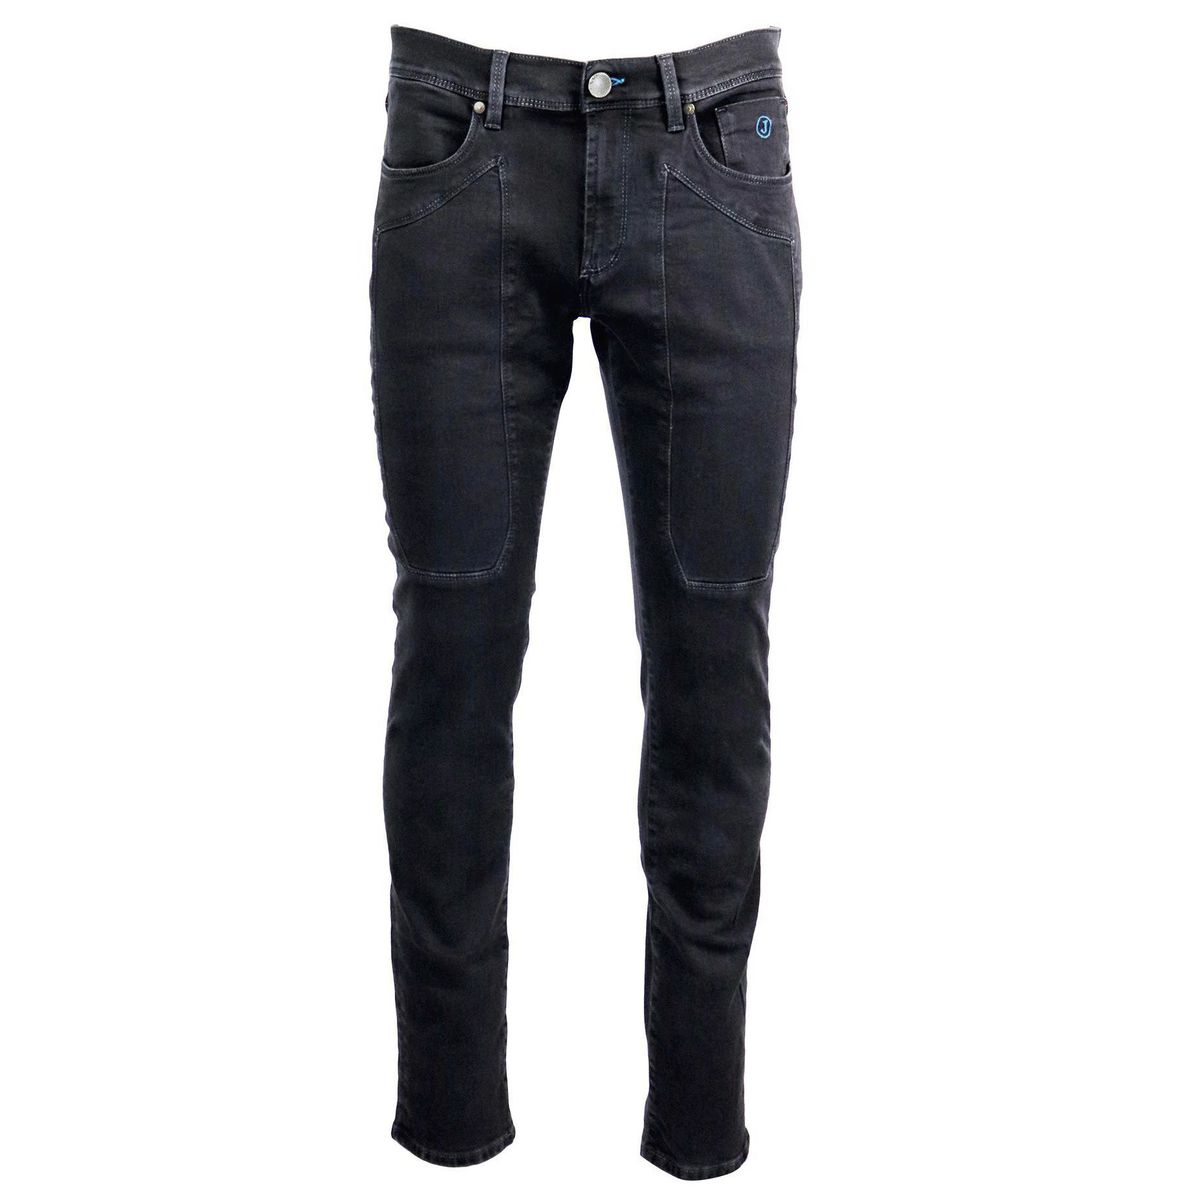 Slim jeans with 5 patch pockets Black Jeckerson